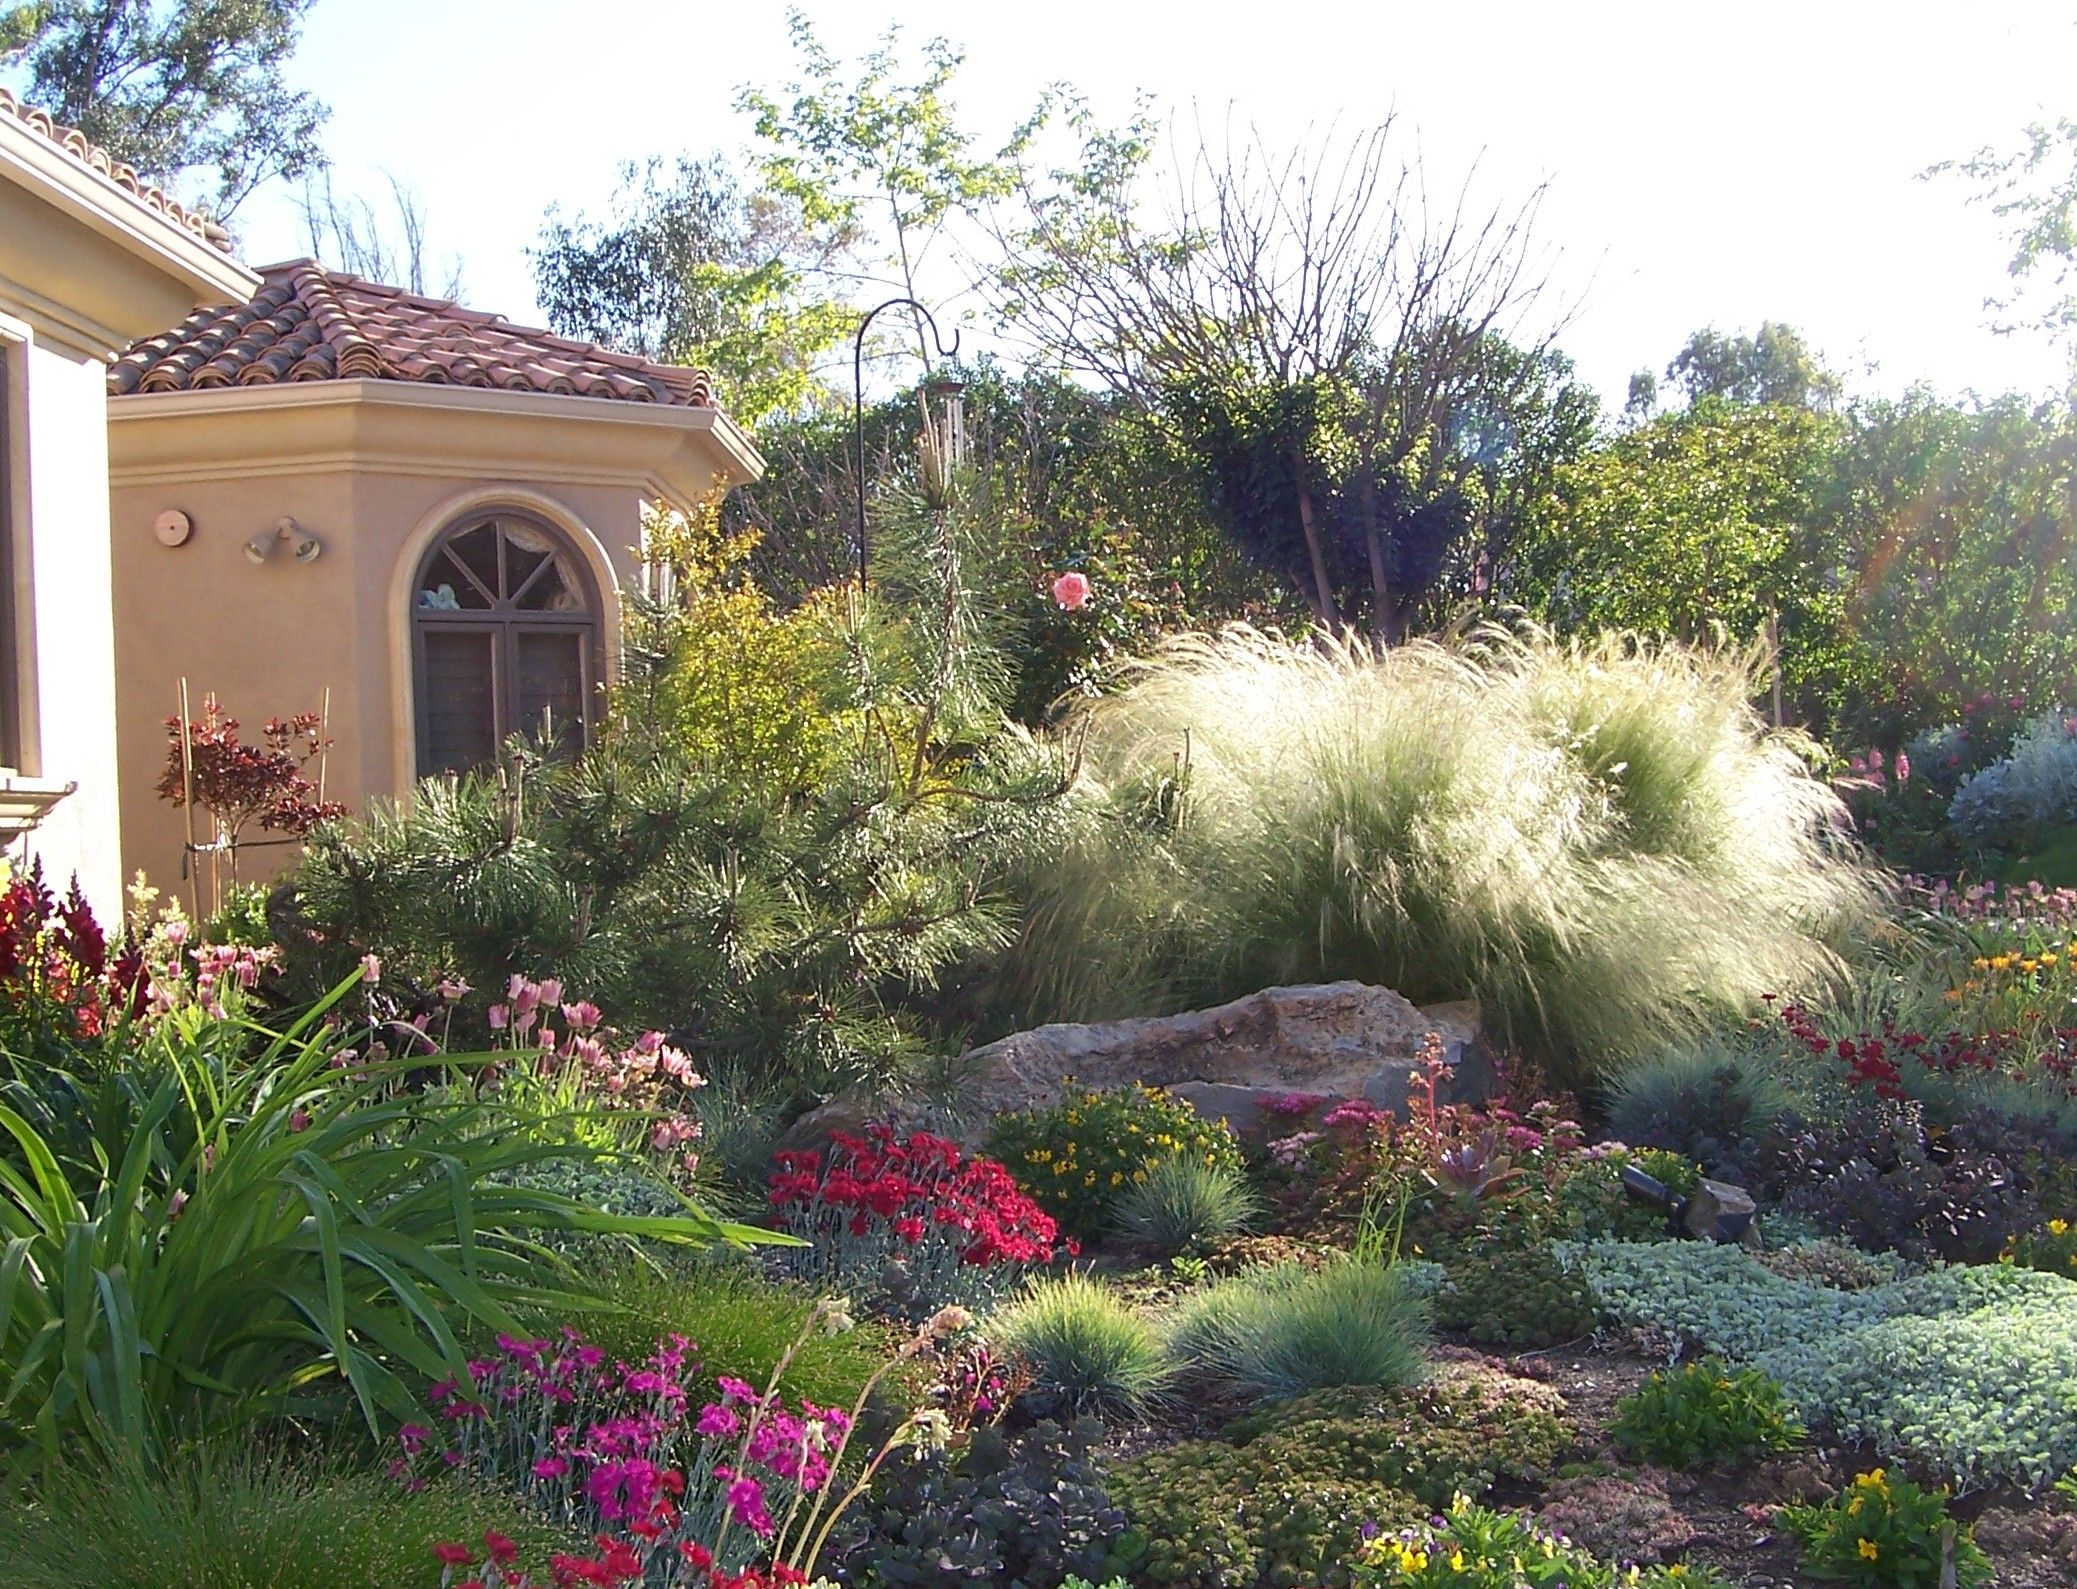 Drought Tolerant Garden Design best 25 drought tolerant garden ideas on pinterest water tolerant landscaping drought tolerant landscape and full sun landscaping Profusion Of Drought Tolerant Perennials And Grasses Xeriscape Design